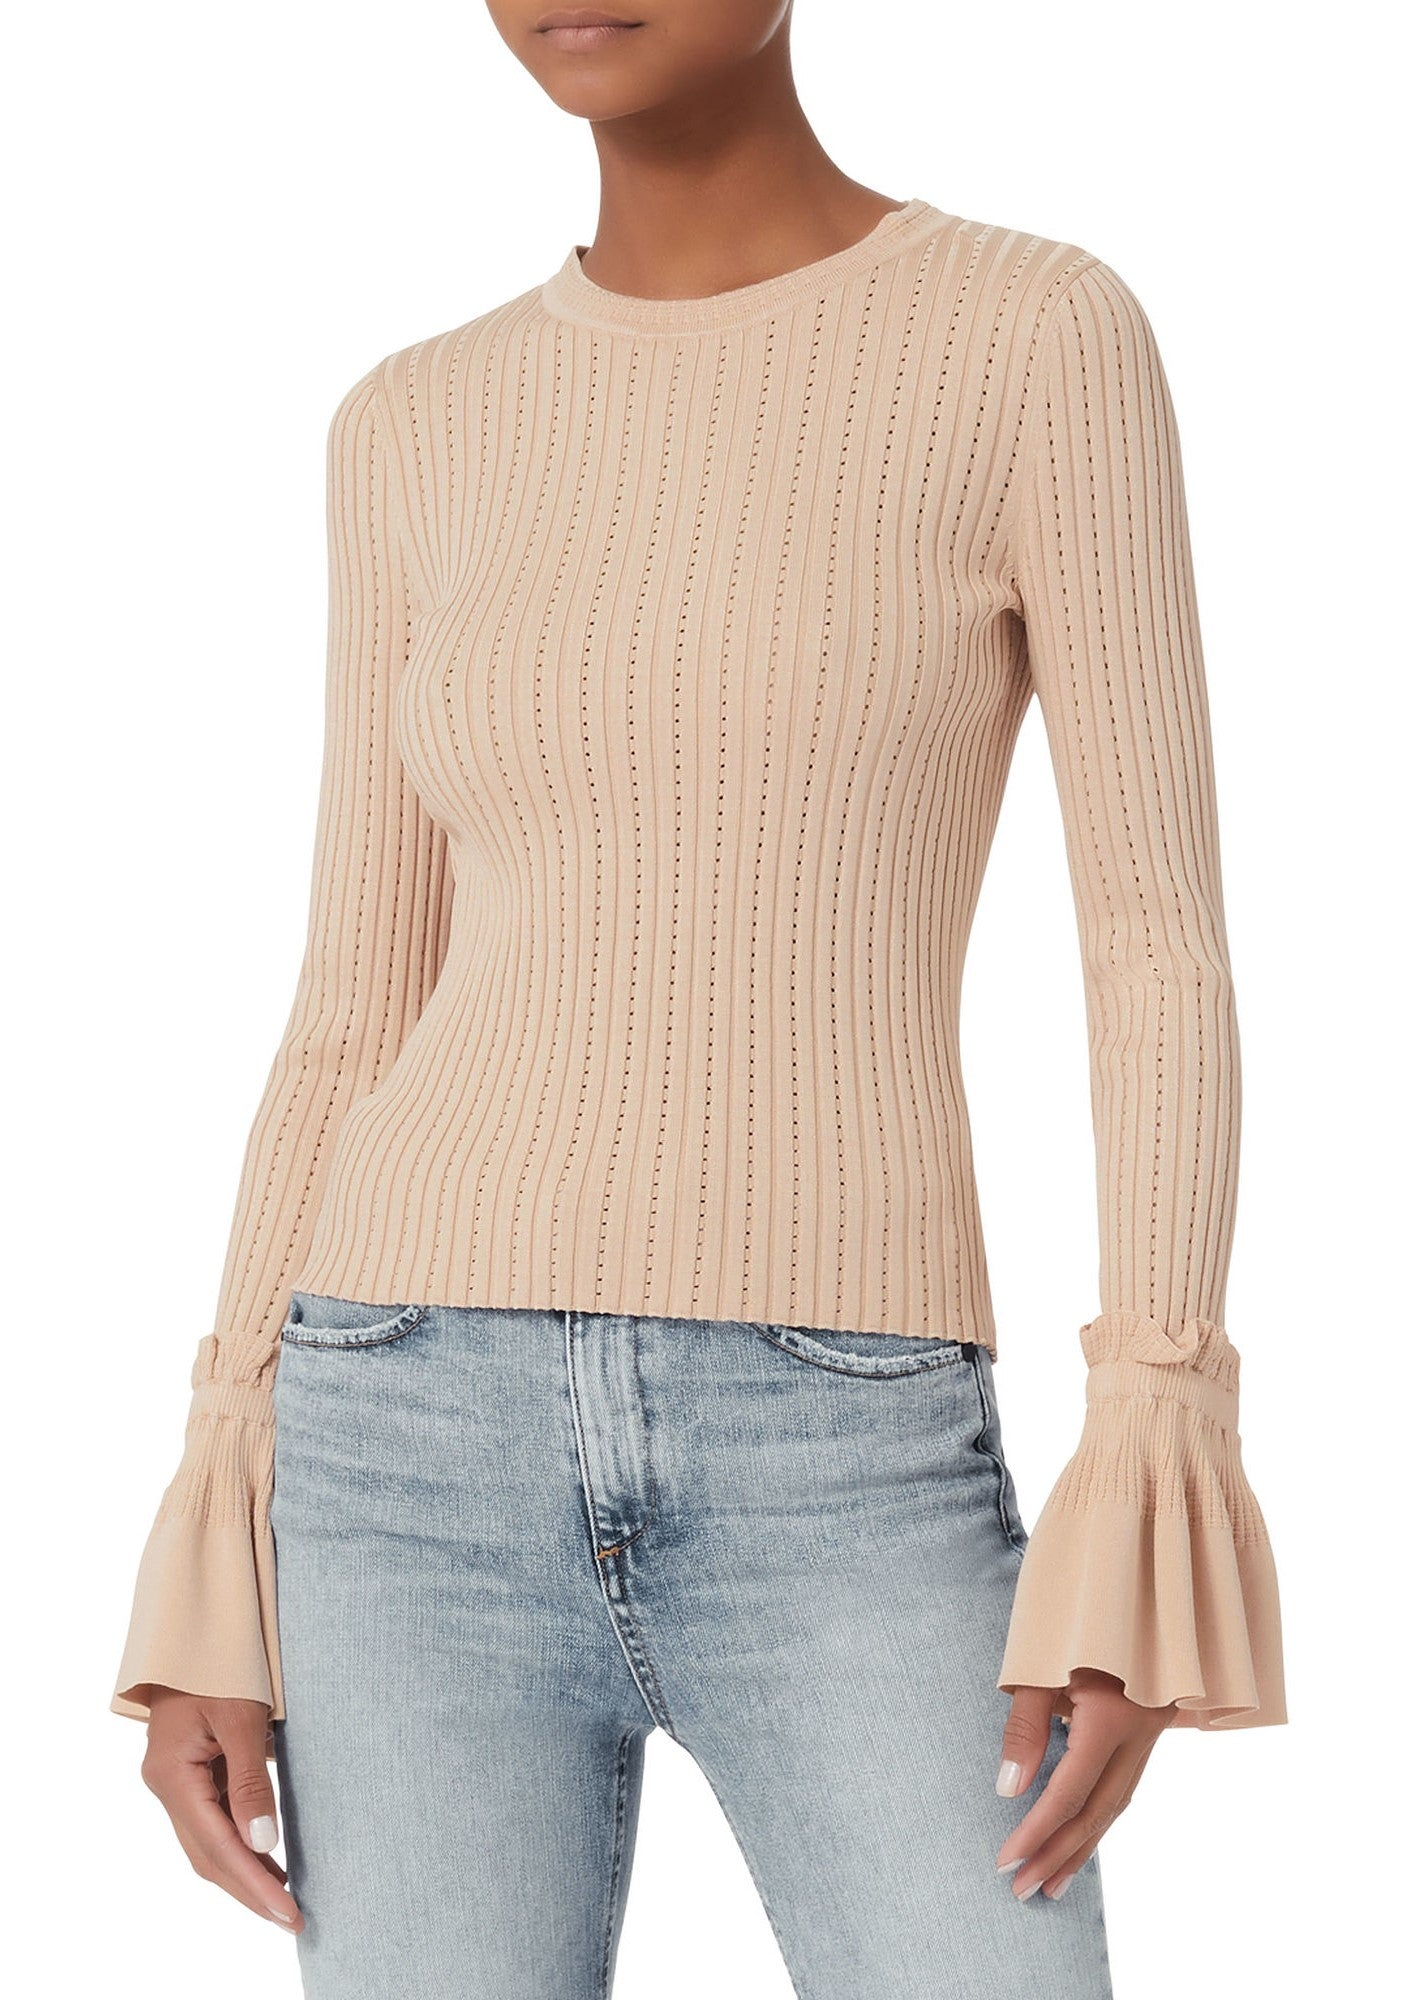 Jonathan Simkhai Applique Ruffle Knit Crewneck Sweater